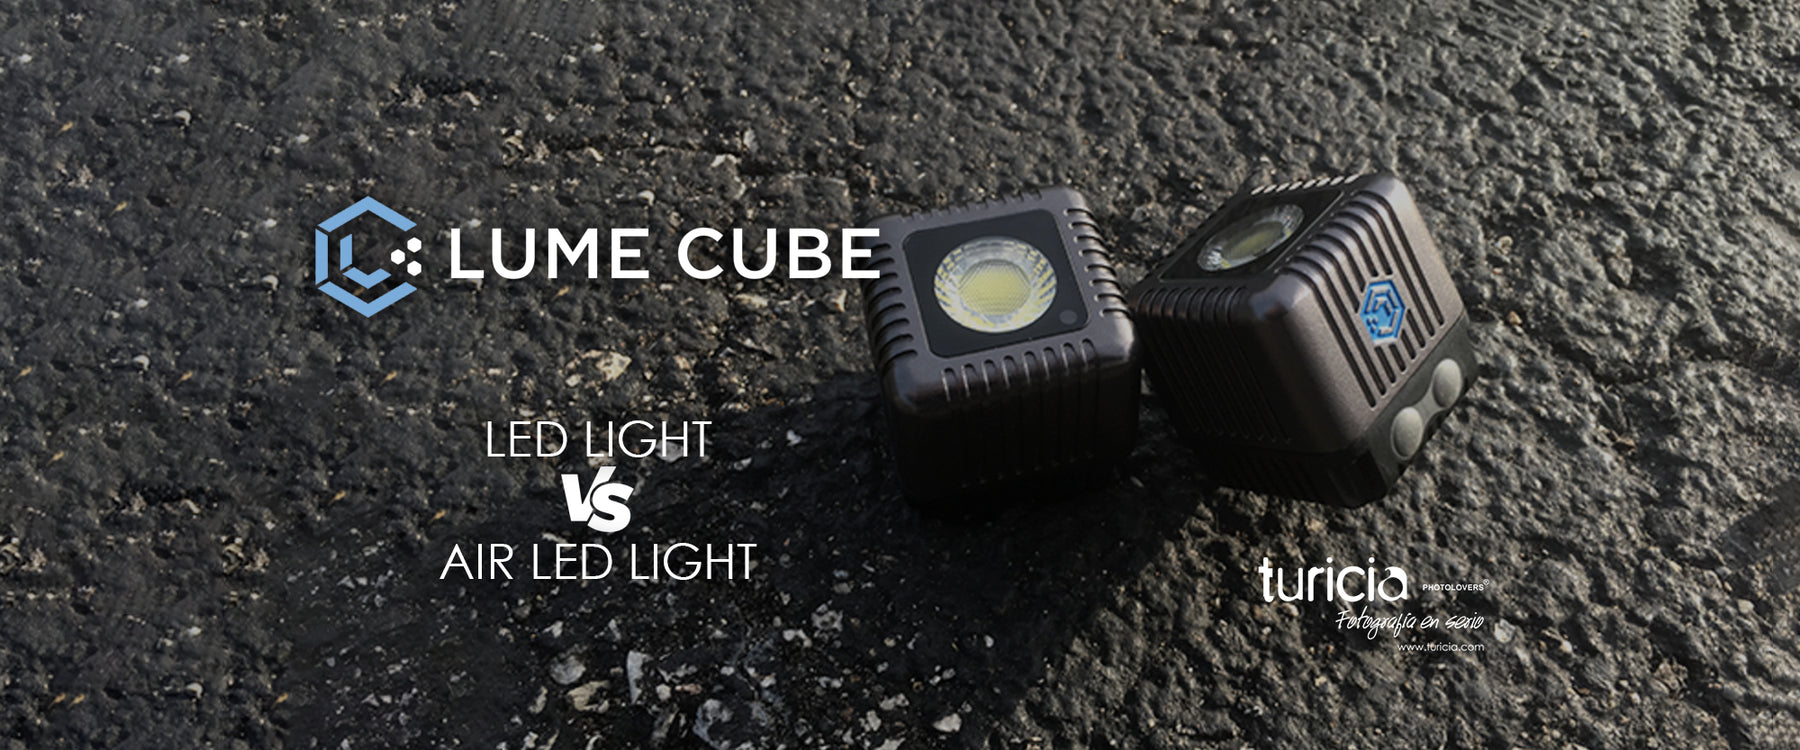 Lume Cube Led Light vs Lume Cube Air Led Light